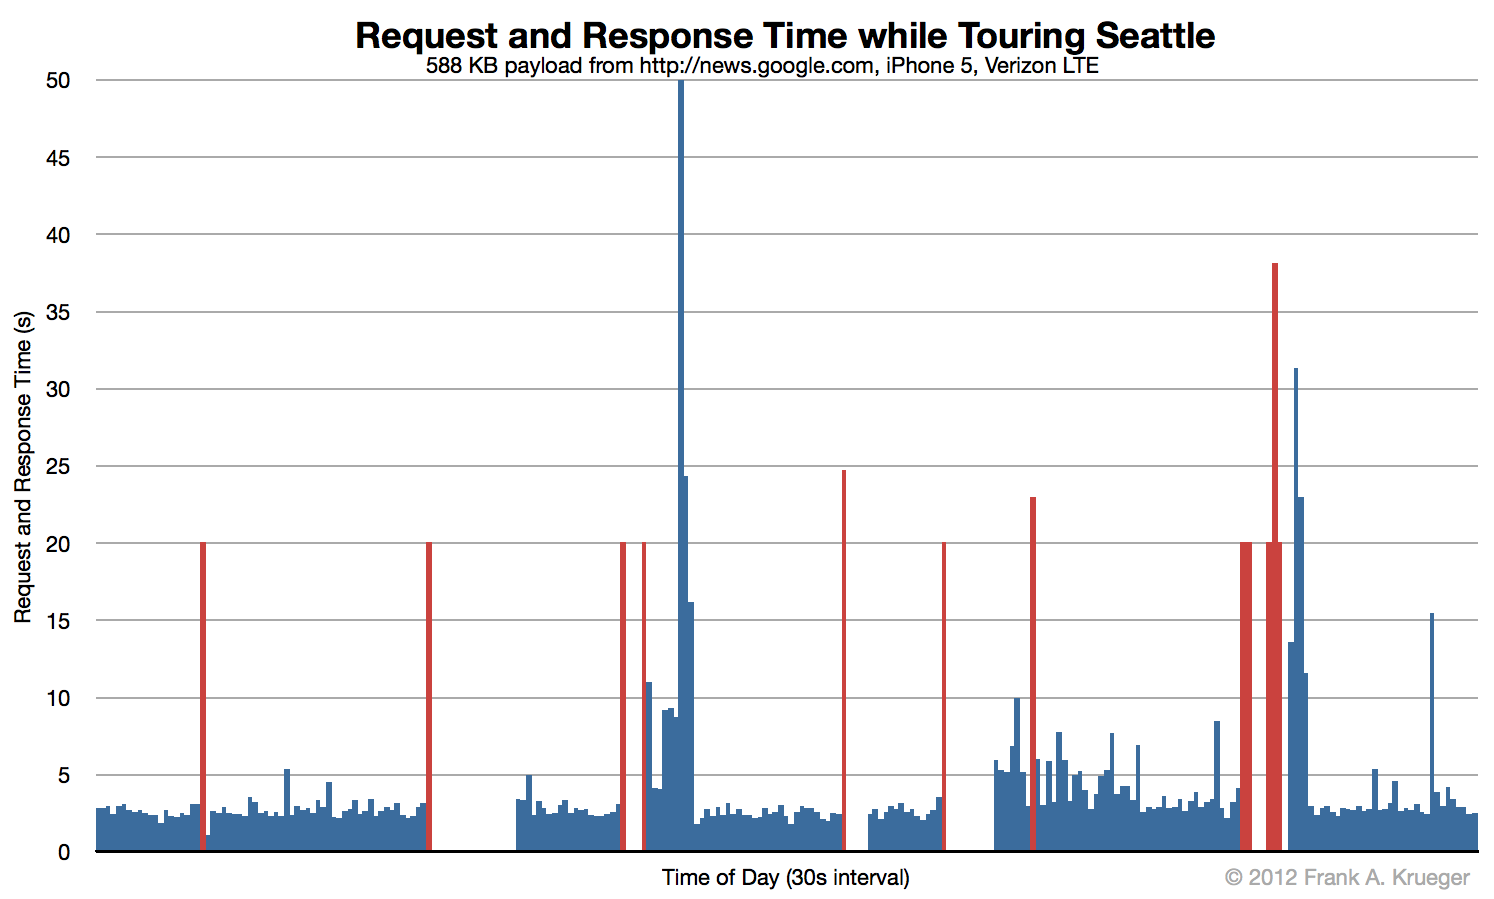 Request and response times touring Seattle